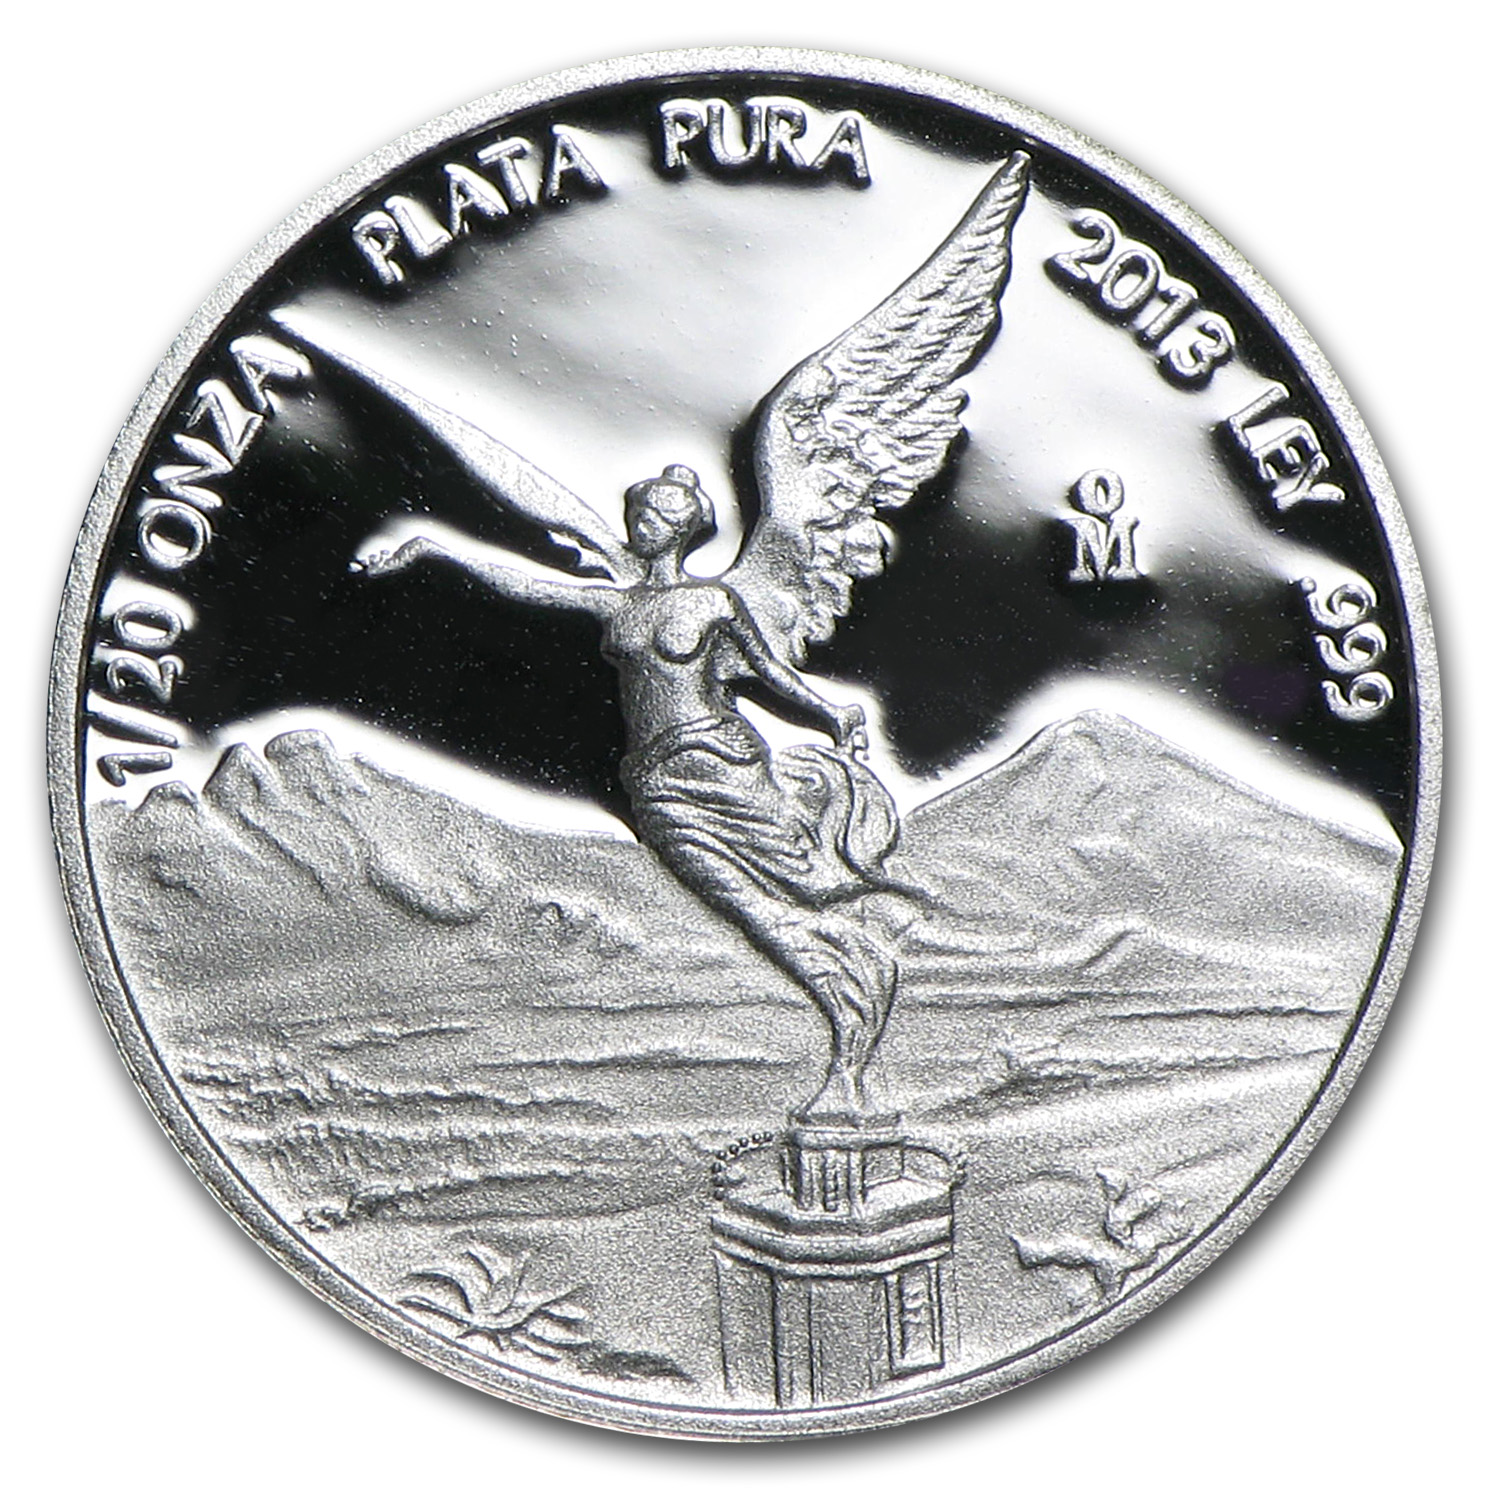 2013 (1/20 oz) Silver Libertad - Proof (In Capsule)